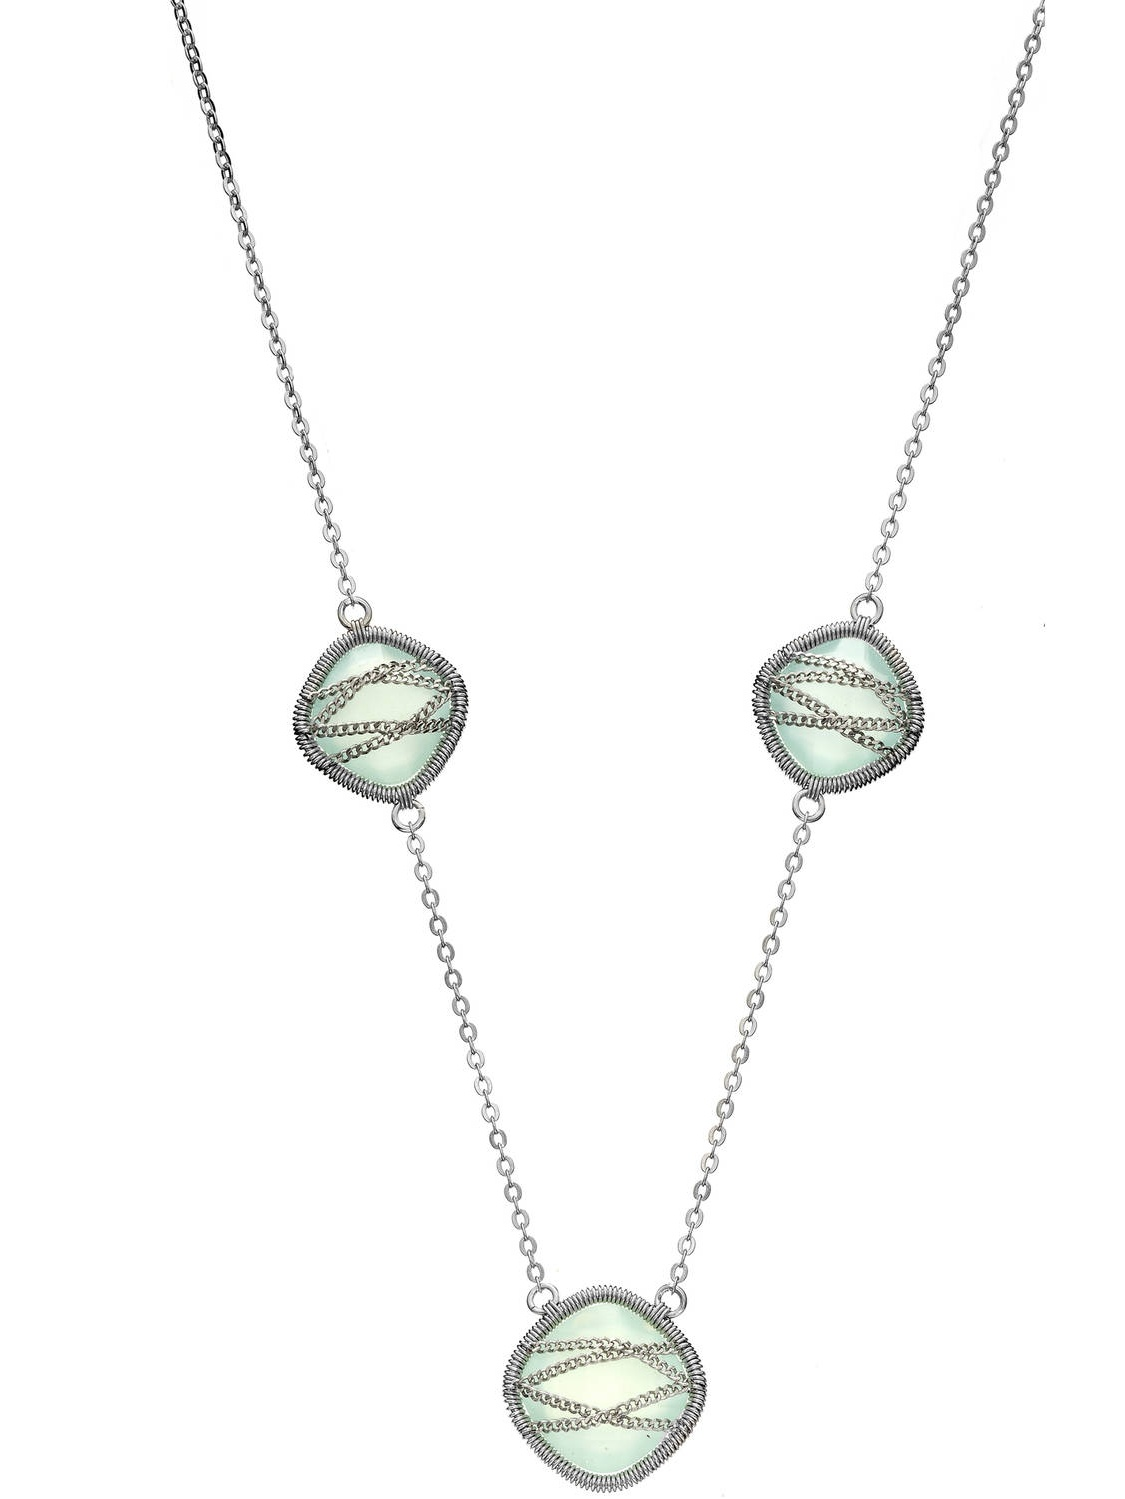 5th & Main Sterling Silver Hand-Wrapped Triple-Squared Chalcedony Stone Necklace by Generic